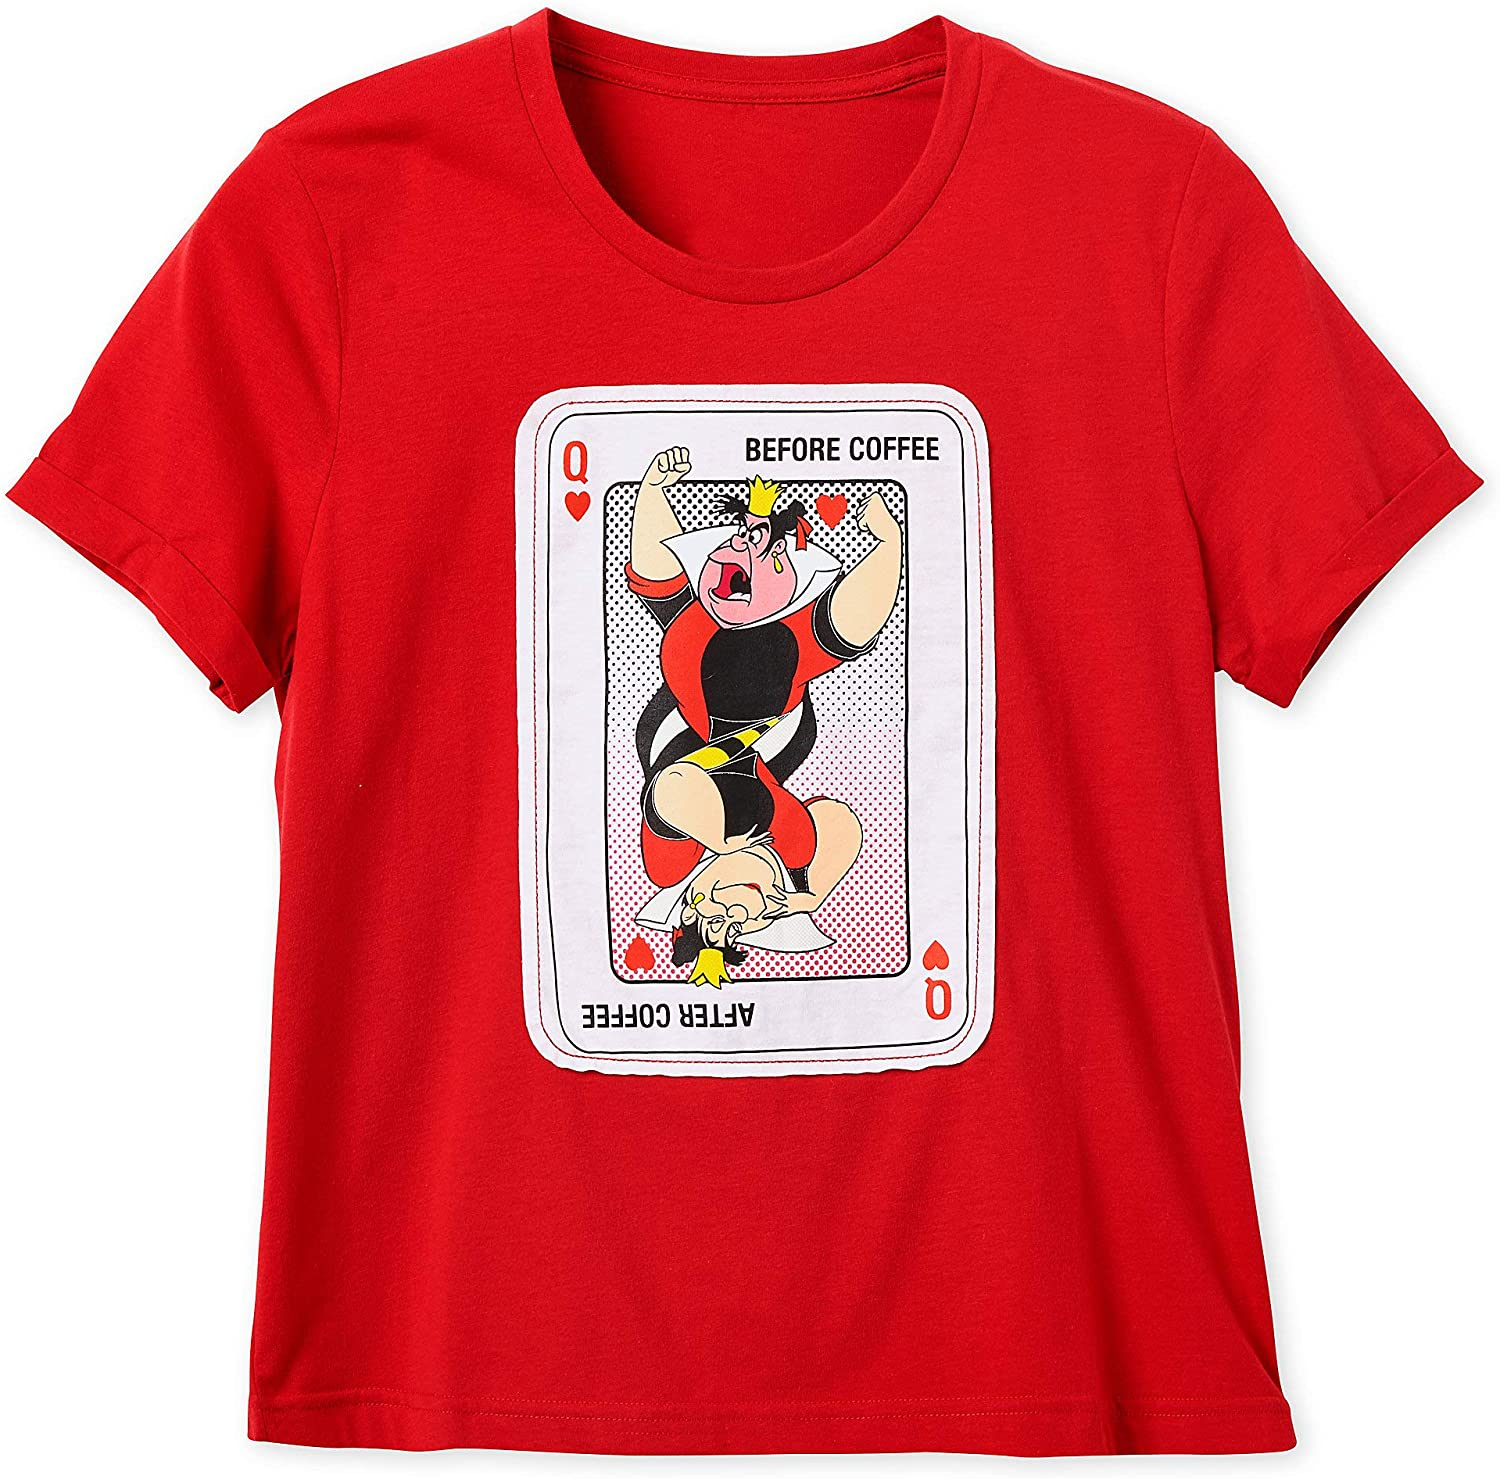 Queen of Everything Red Juniors Soft T-Shirt